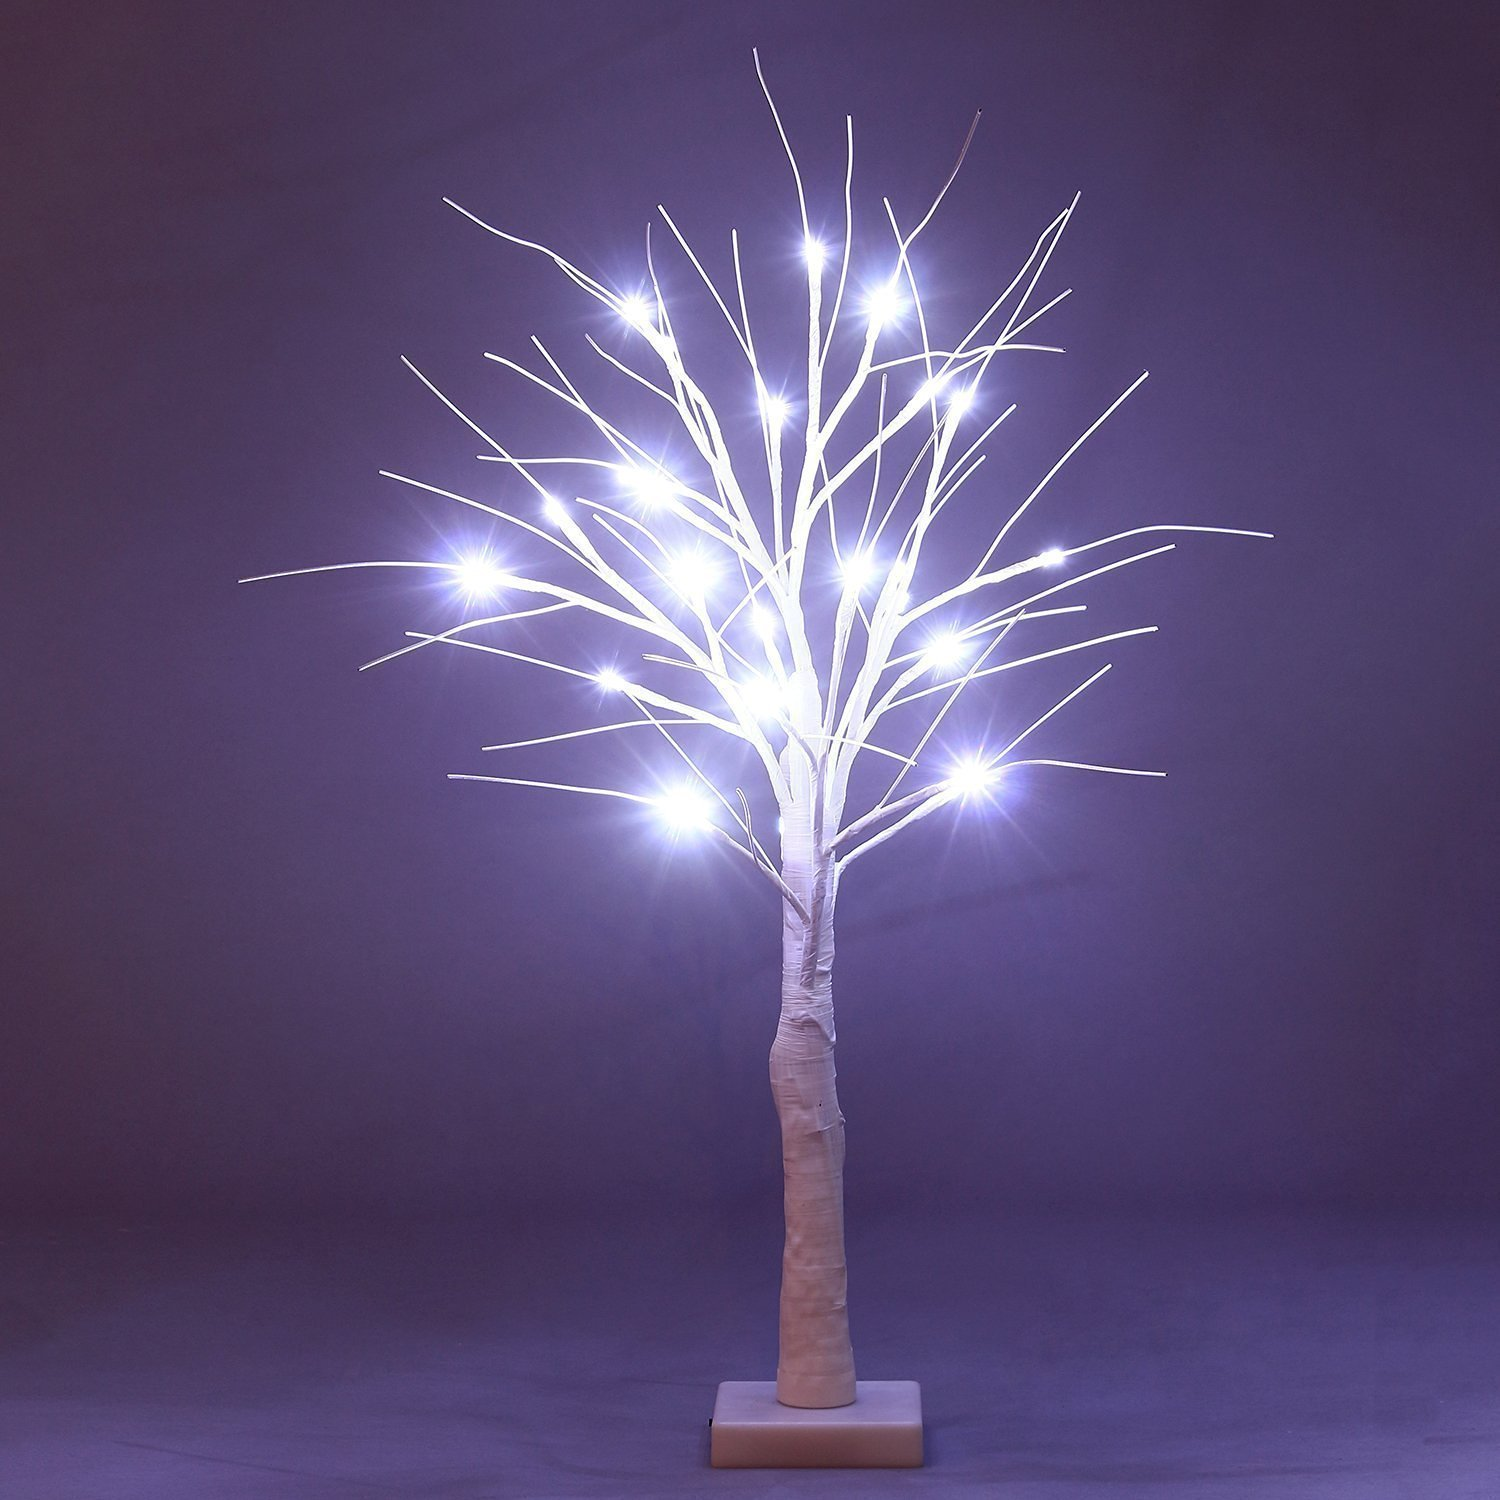 Fashionlite Birch Tree Light Bonsai LED Light Decorative Night Light Lamp for Home,Party,Wedding and Christmas Use, 24-Inch,Warm white